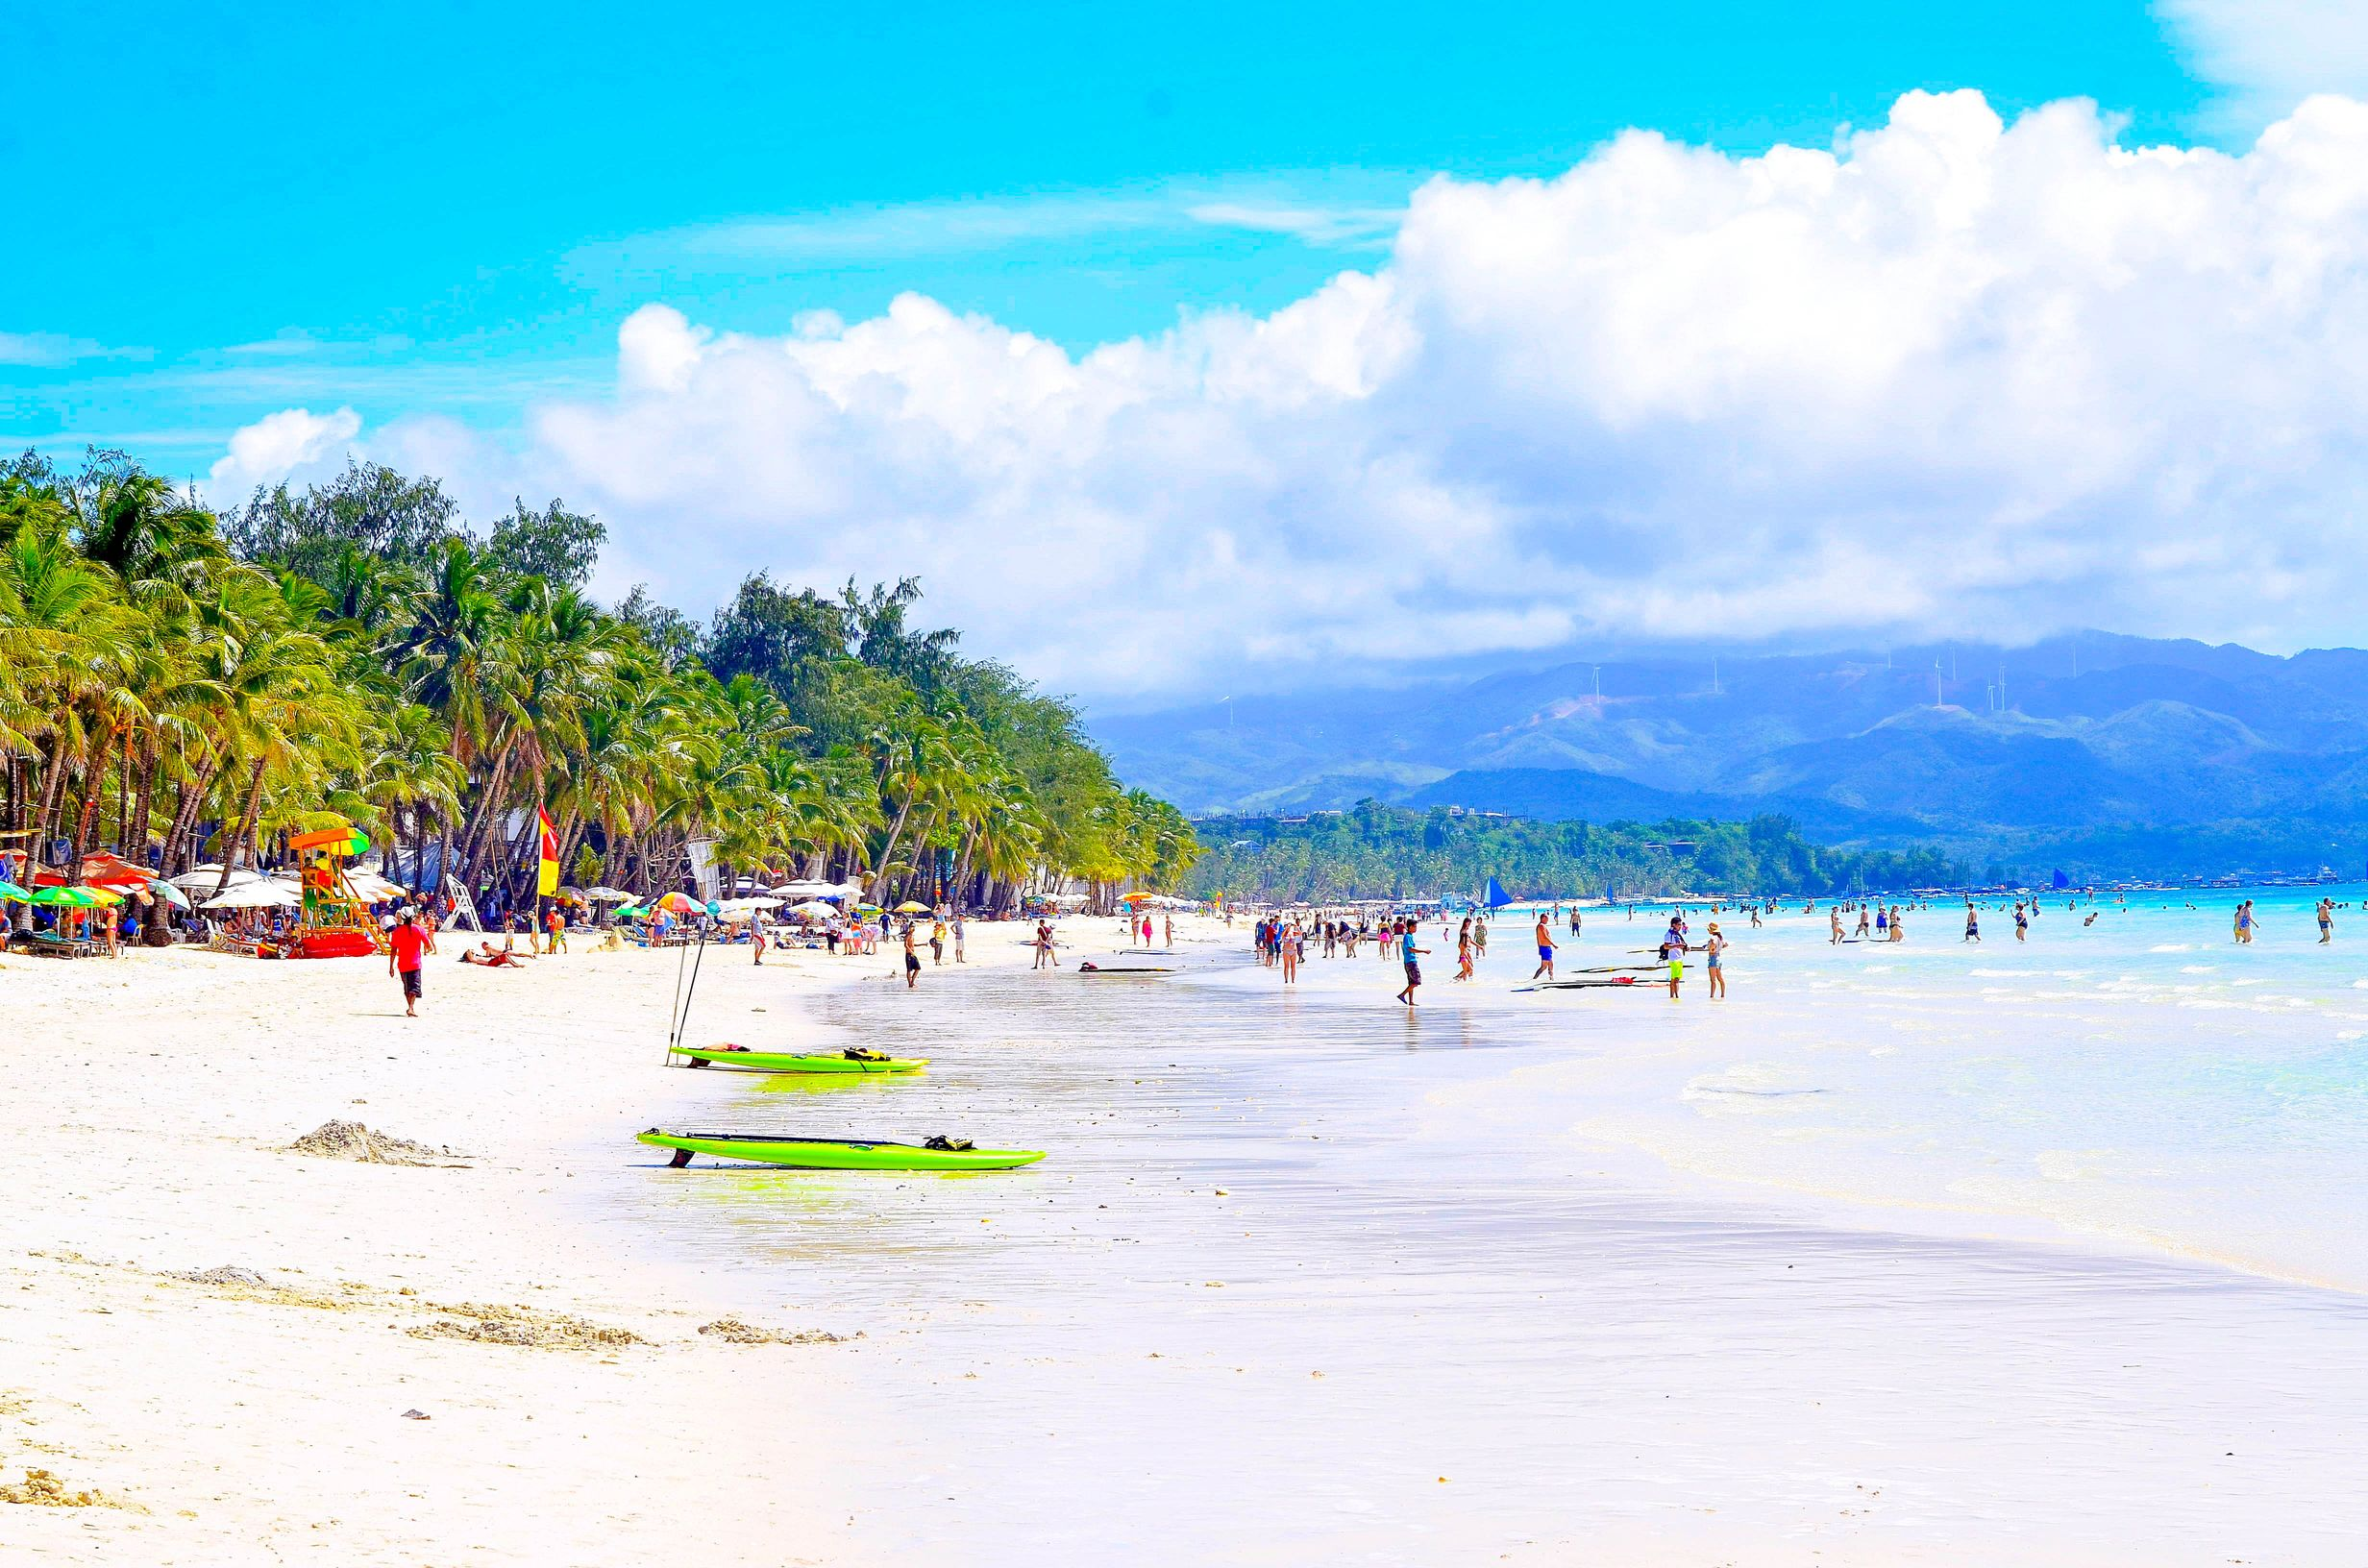 People on white sand beach with coconut palms and blue waters